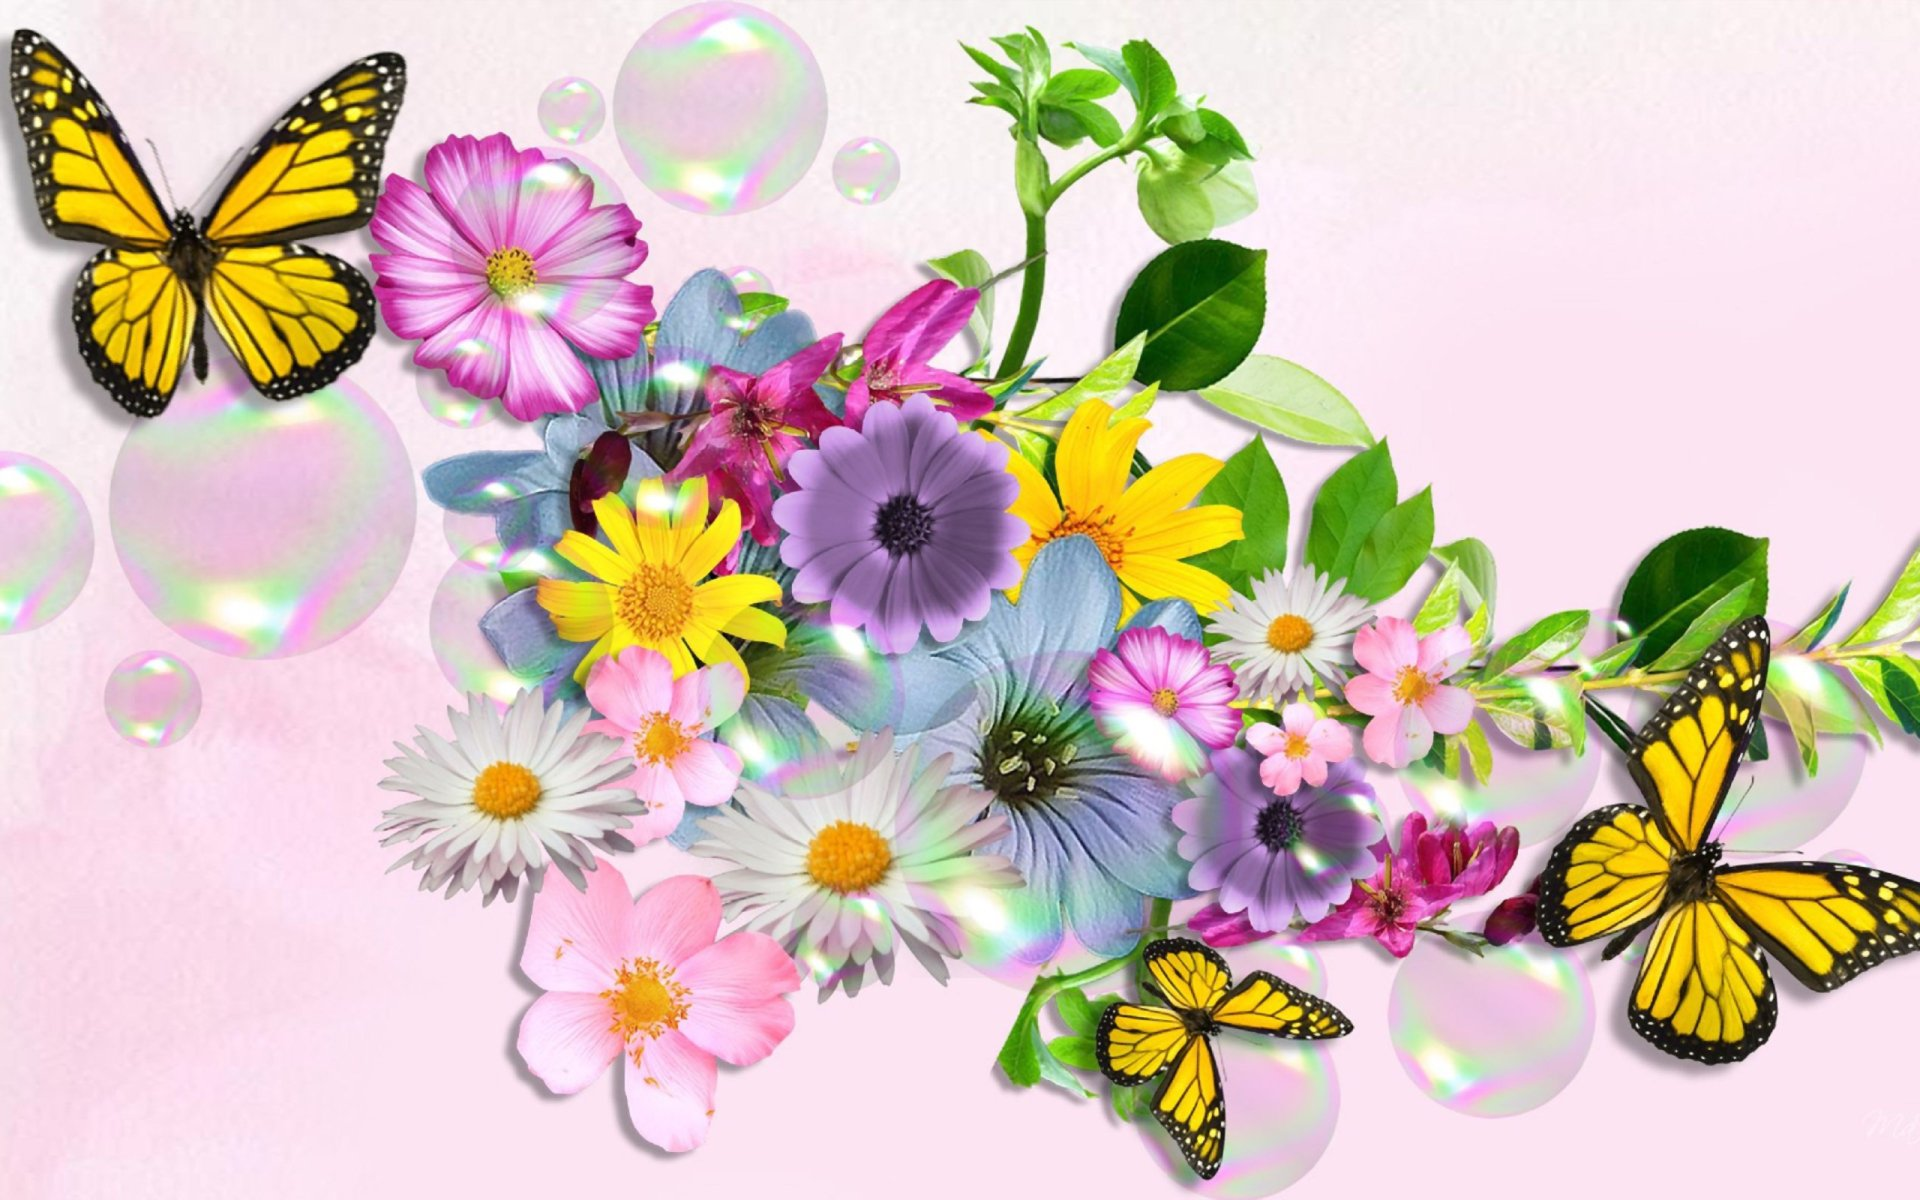 Artistic - Flower  Artistic Colorful Colors Butterfly Wallpaper